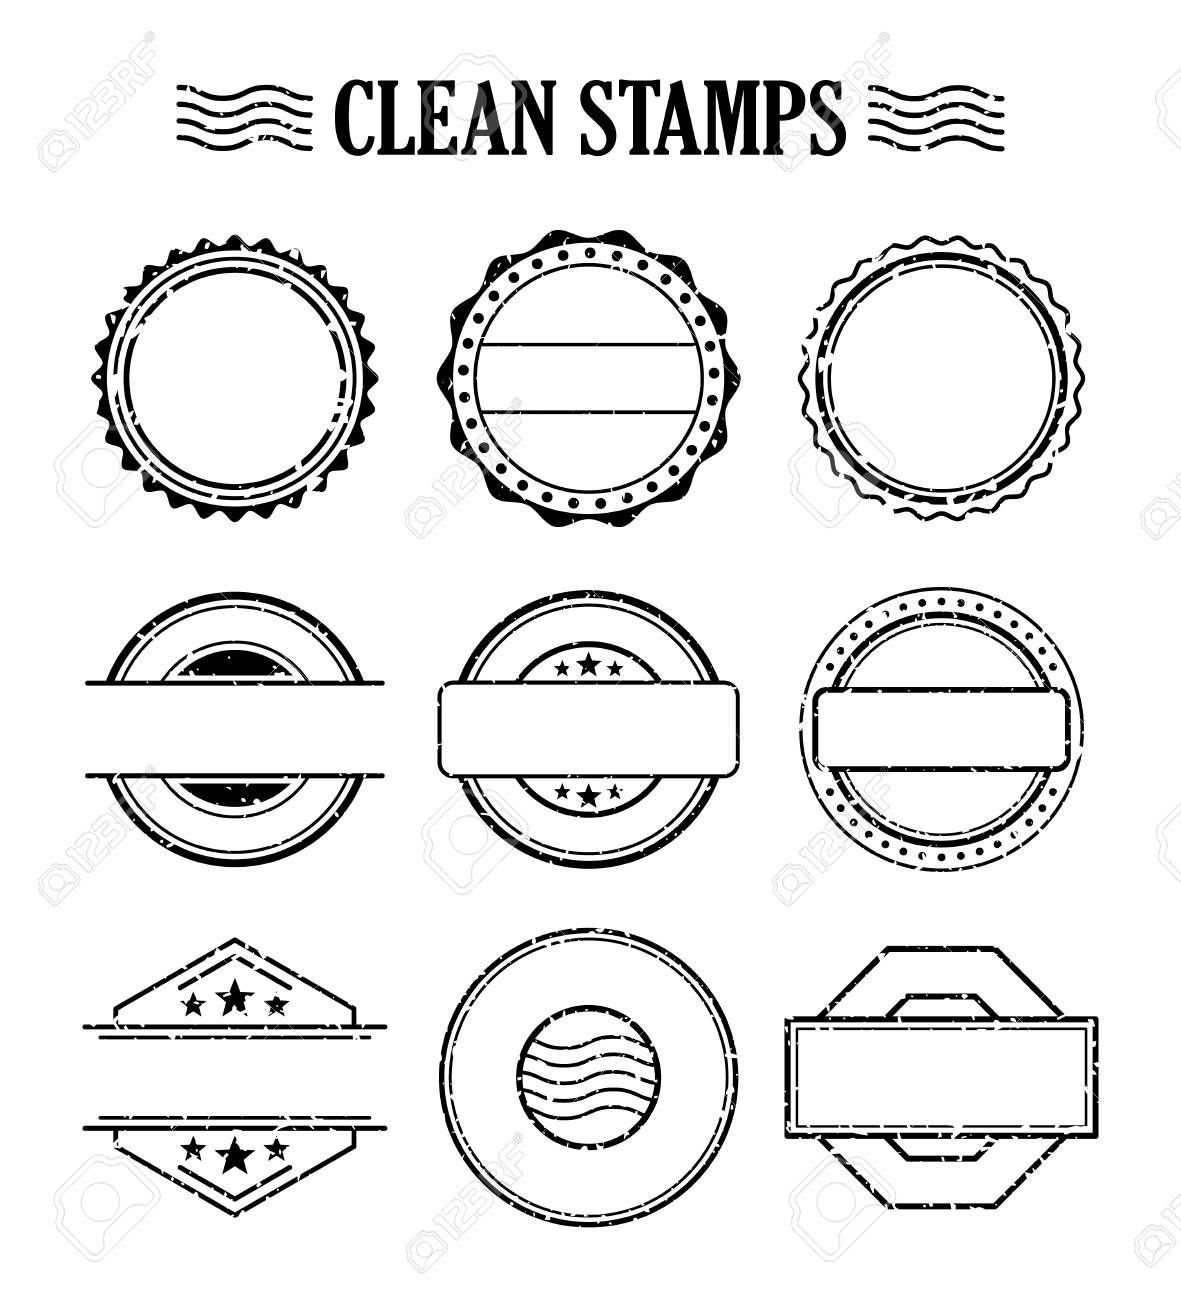 Blank Stamp Set Ink Rubber Seal Texture Effect Postage And Intended For Blank Seal Template Blank Seal Stamp Set Stamp